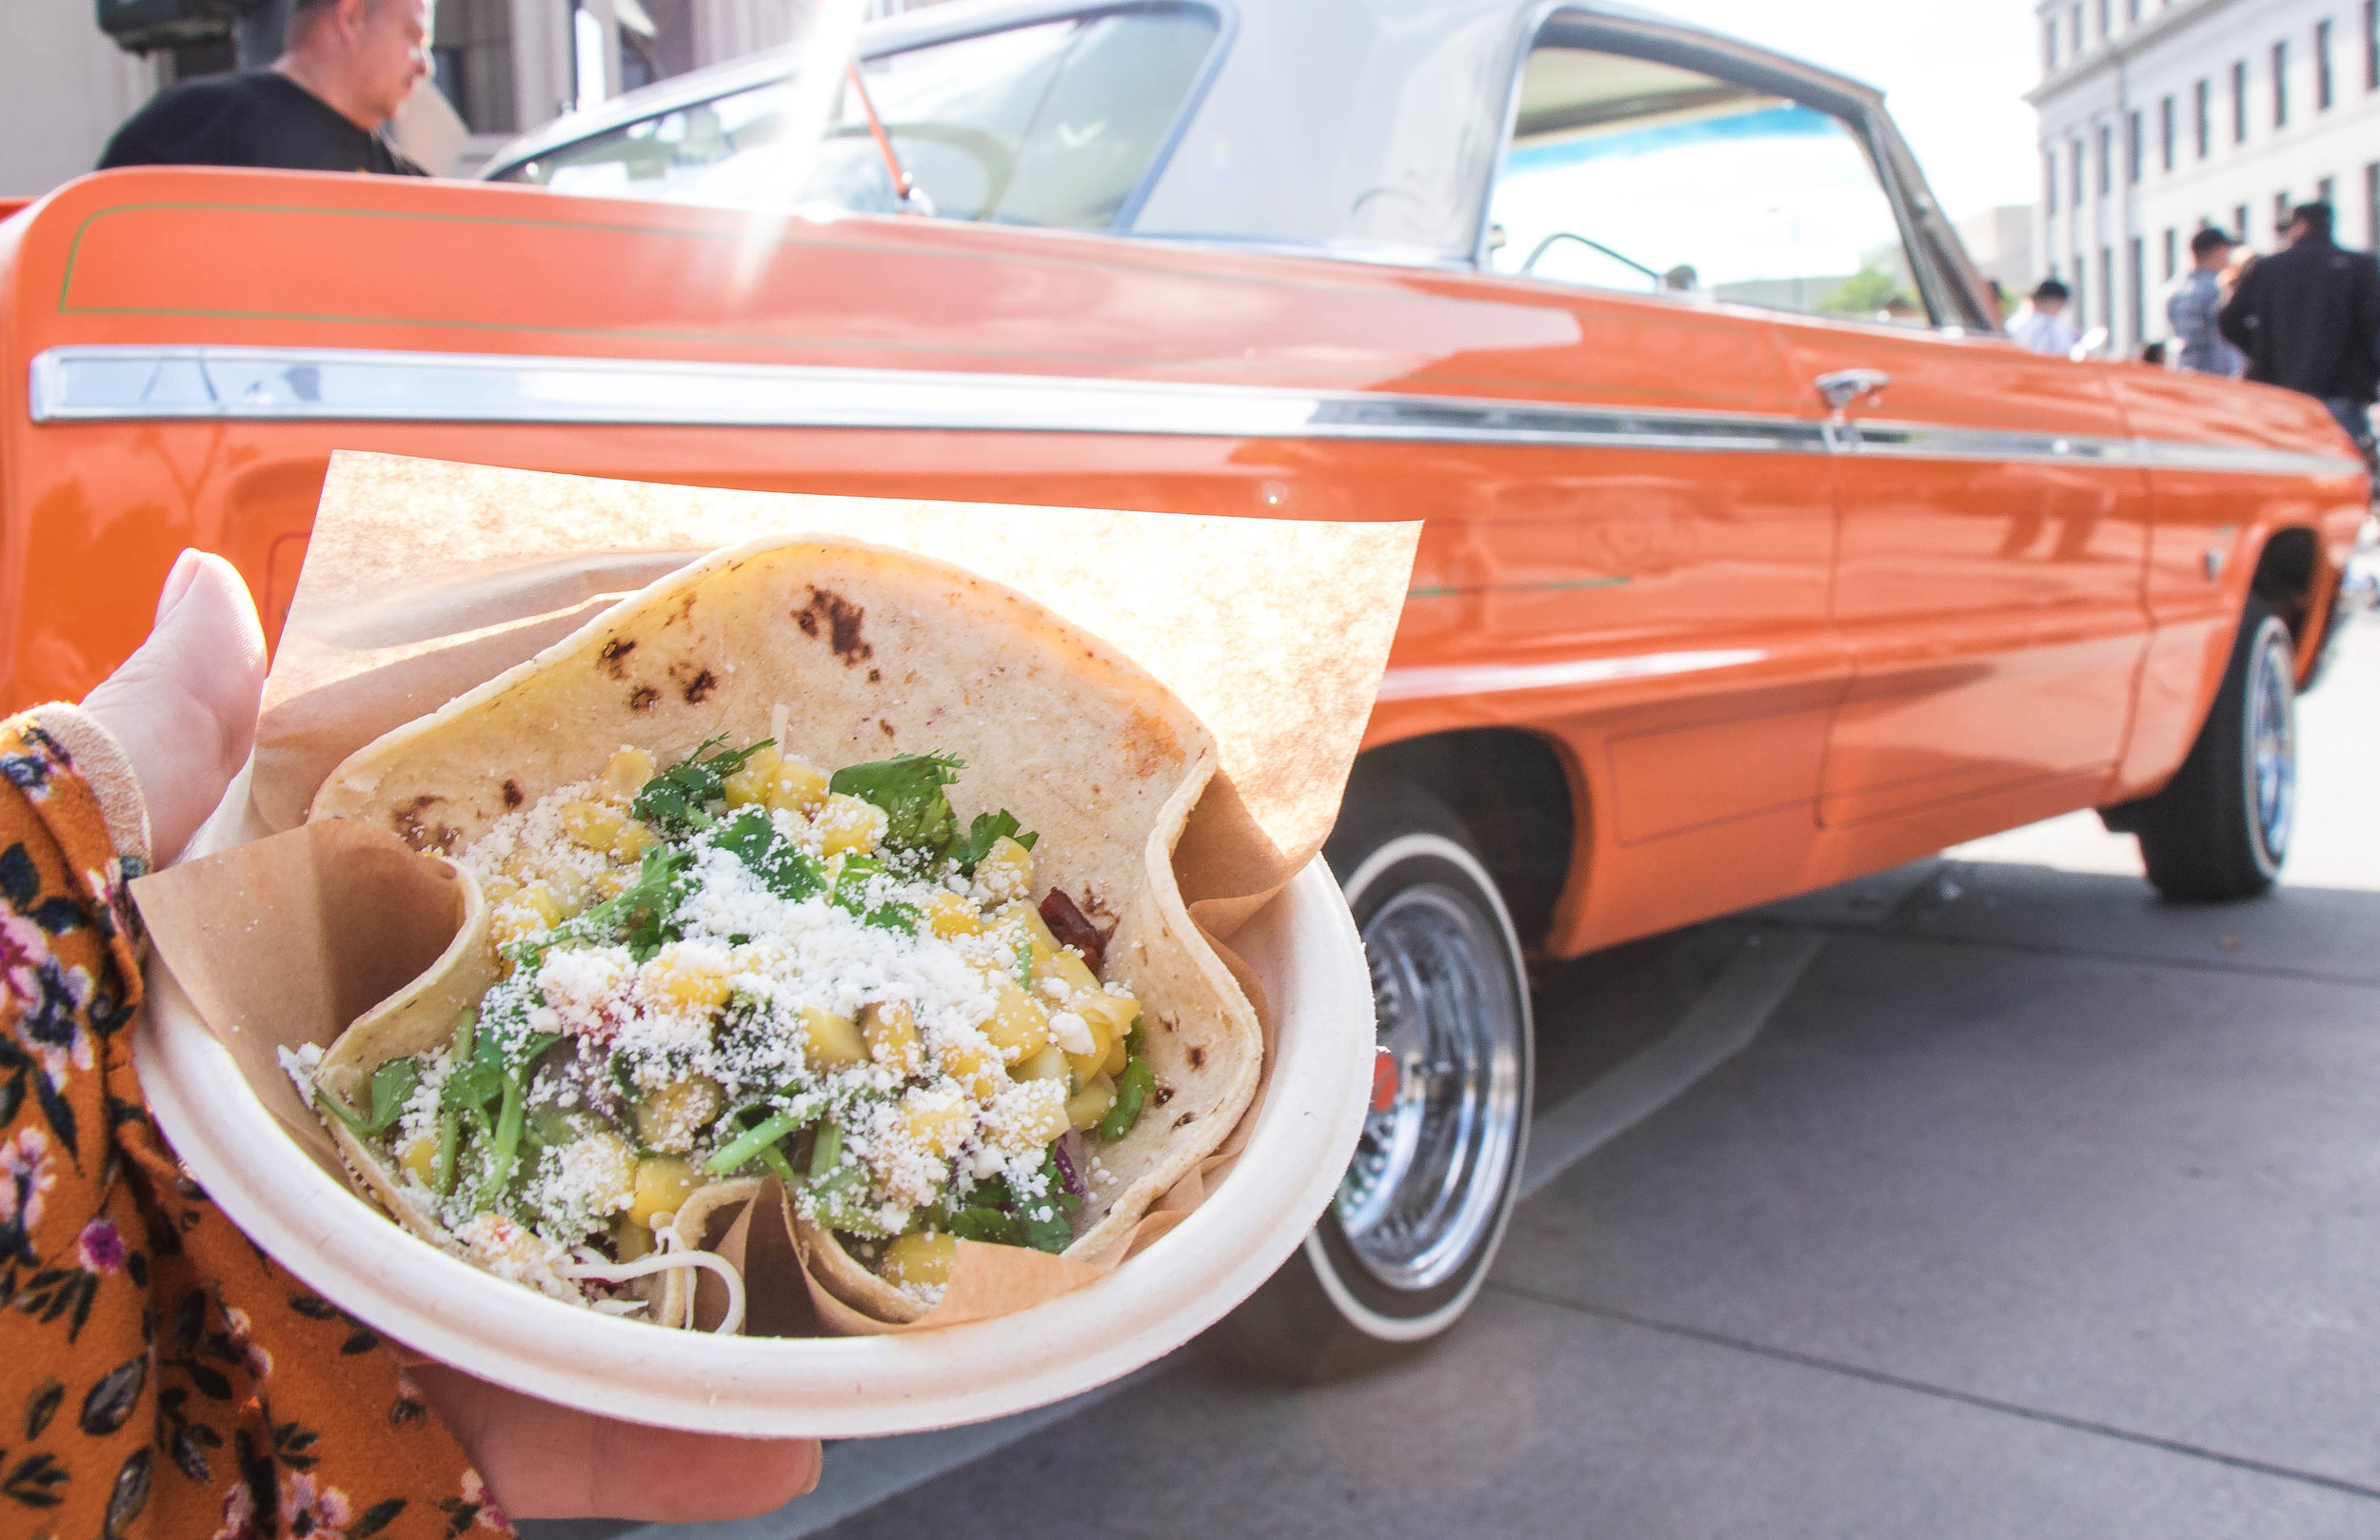 Tacos and lowriders. (Photo Credit: Samantha Bliss)